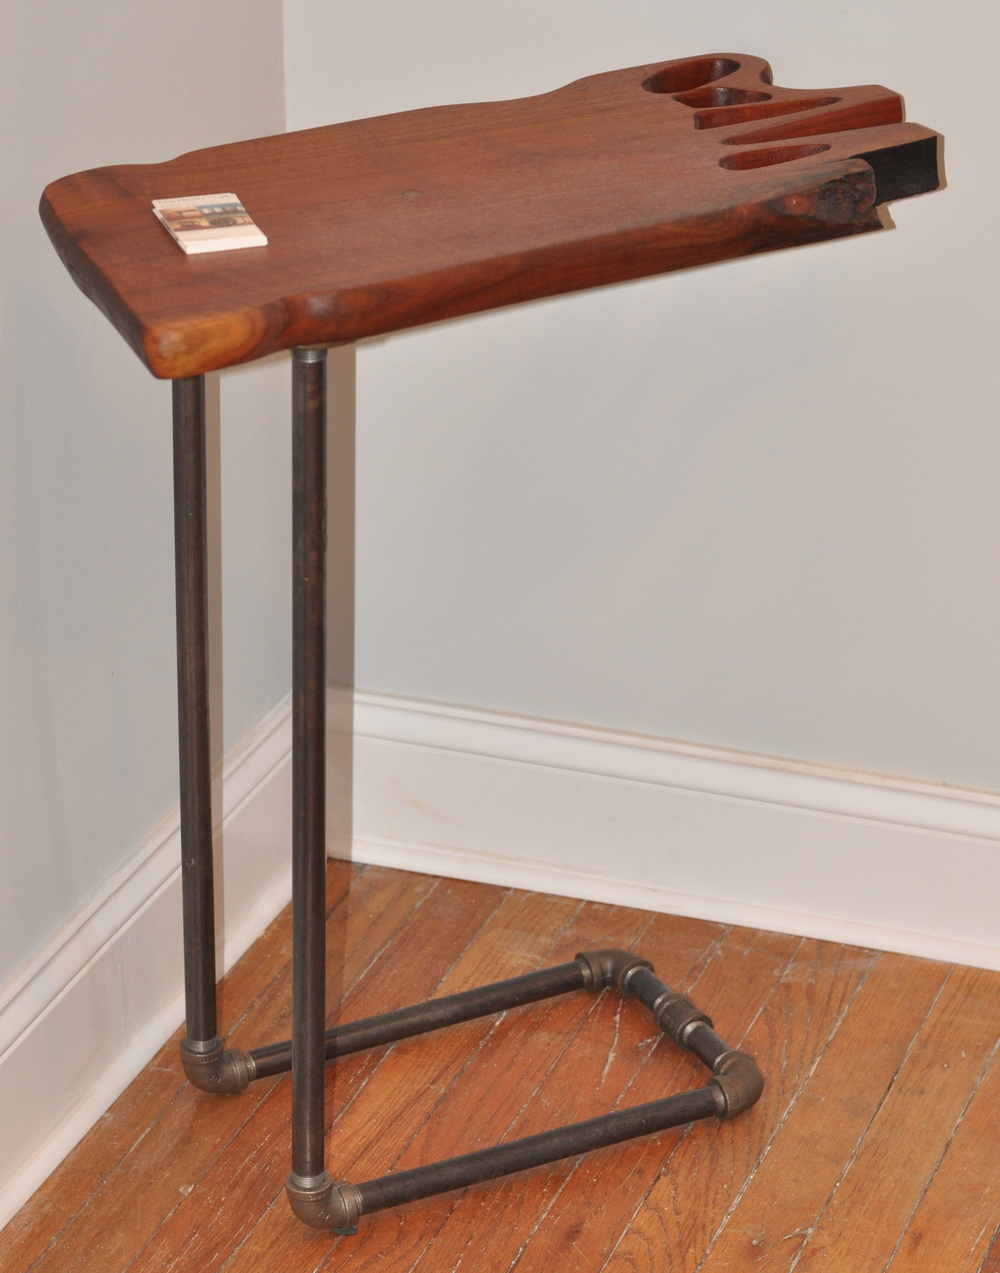 Salon Side Table   Iron pipe, Walnut, 2012    Stephen Scharbrough   Class of 2004    The IRON Slab